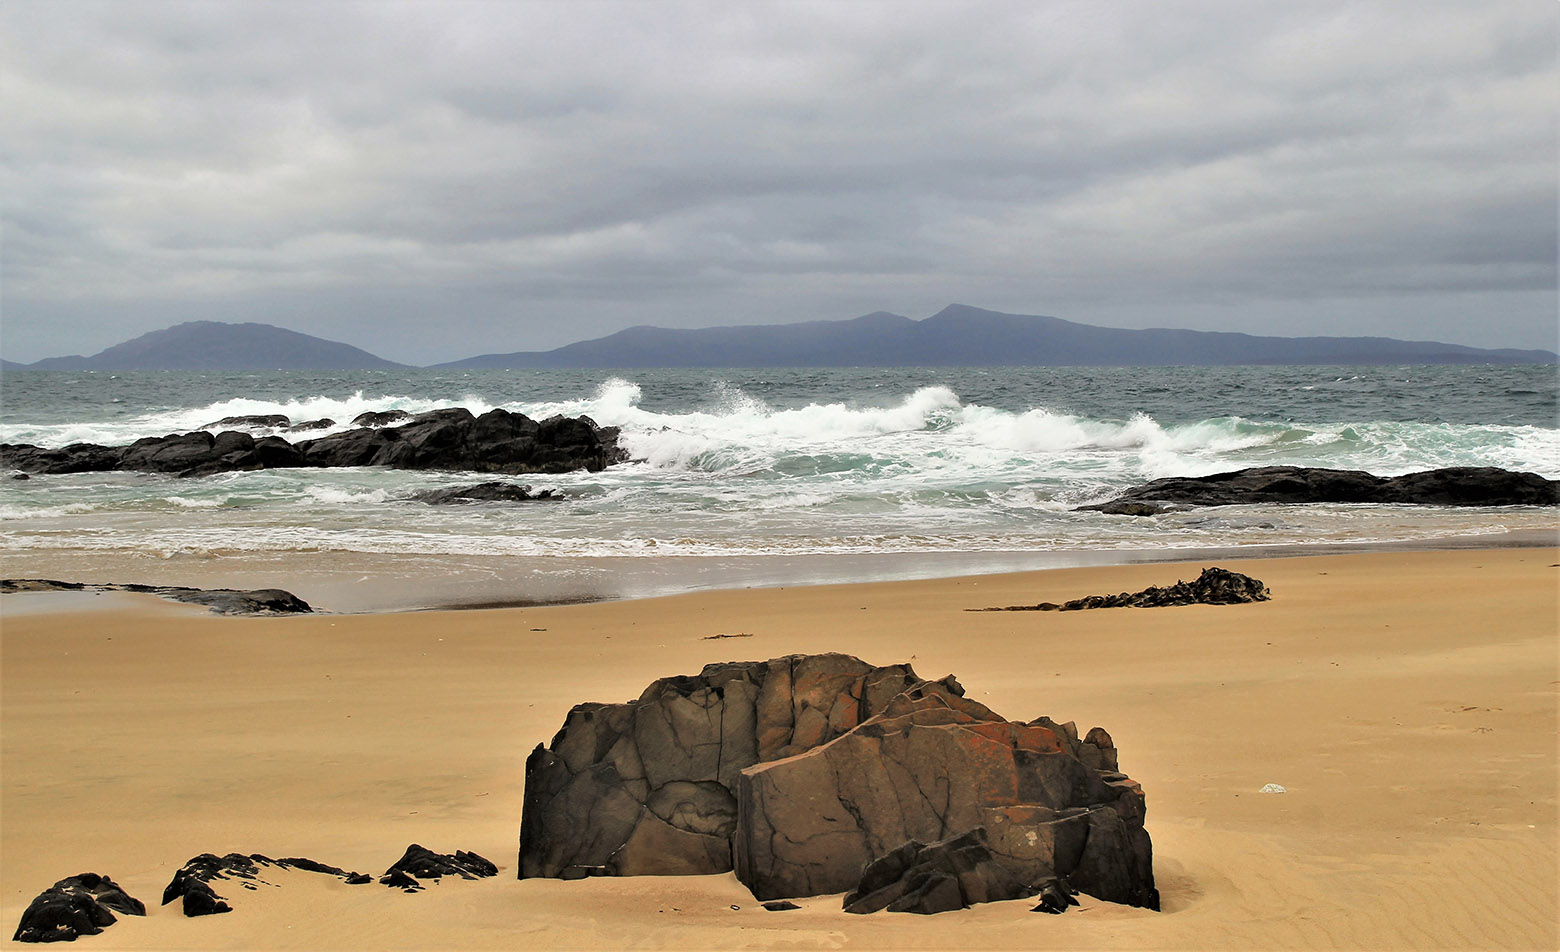 Tasmania Beaches - Best Beaches in Tasmania - Spiky Beach - Kerry Hulm